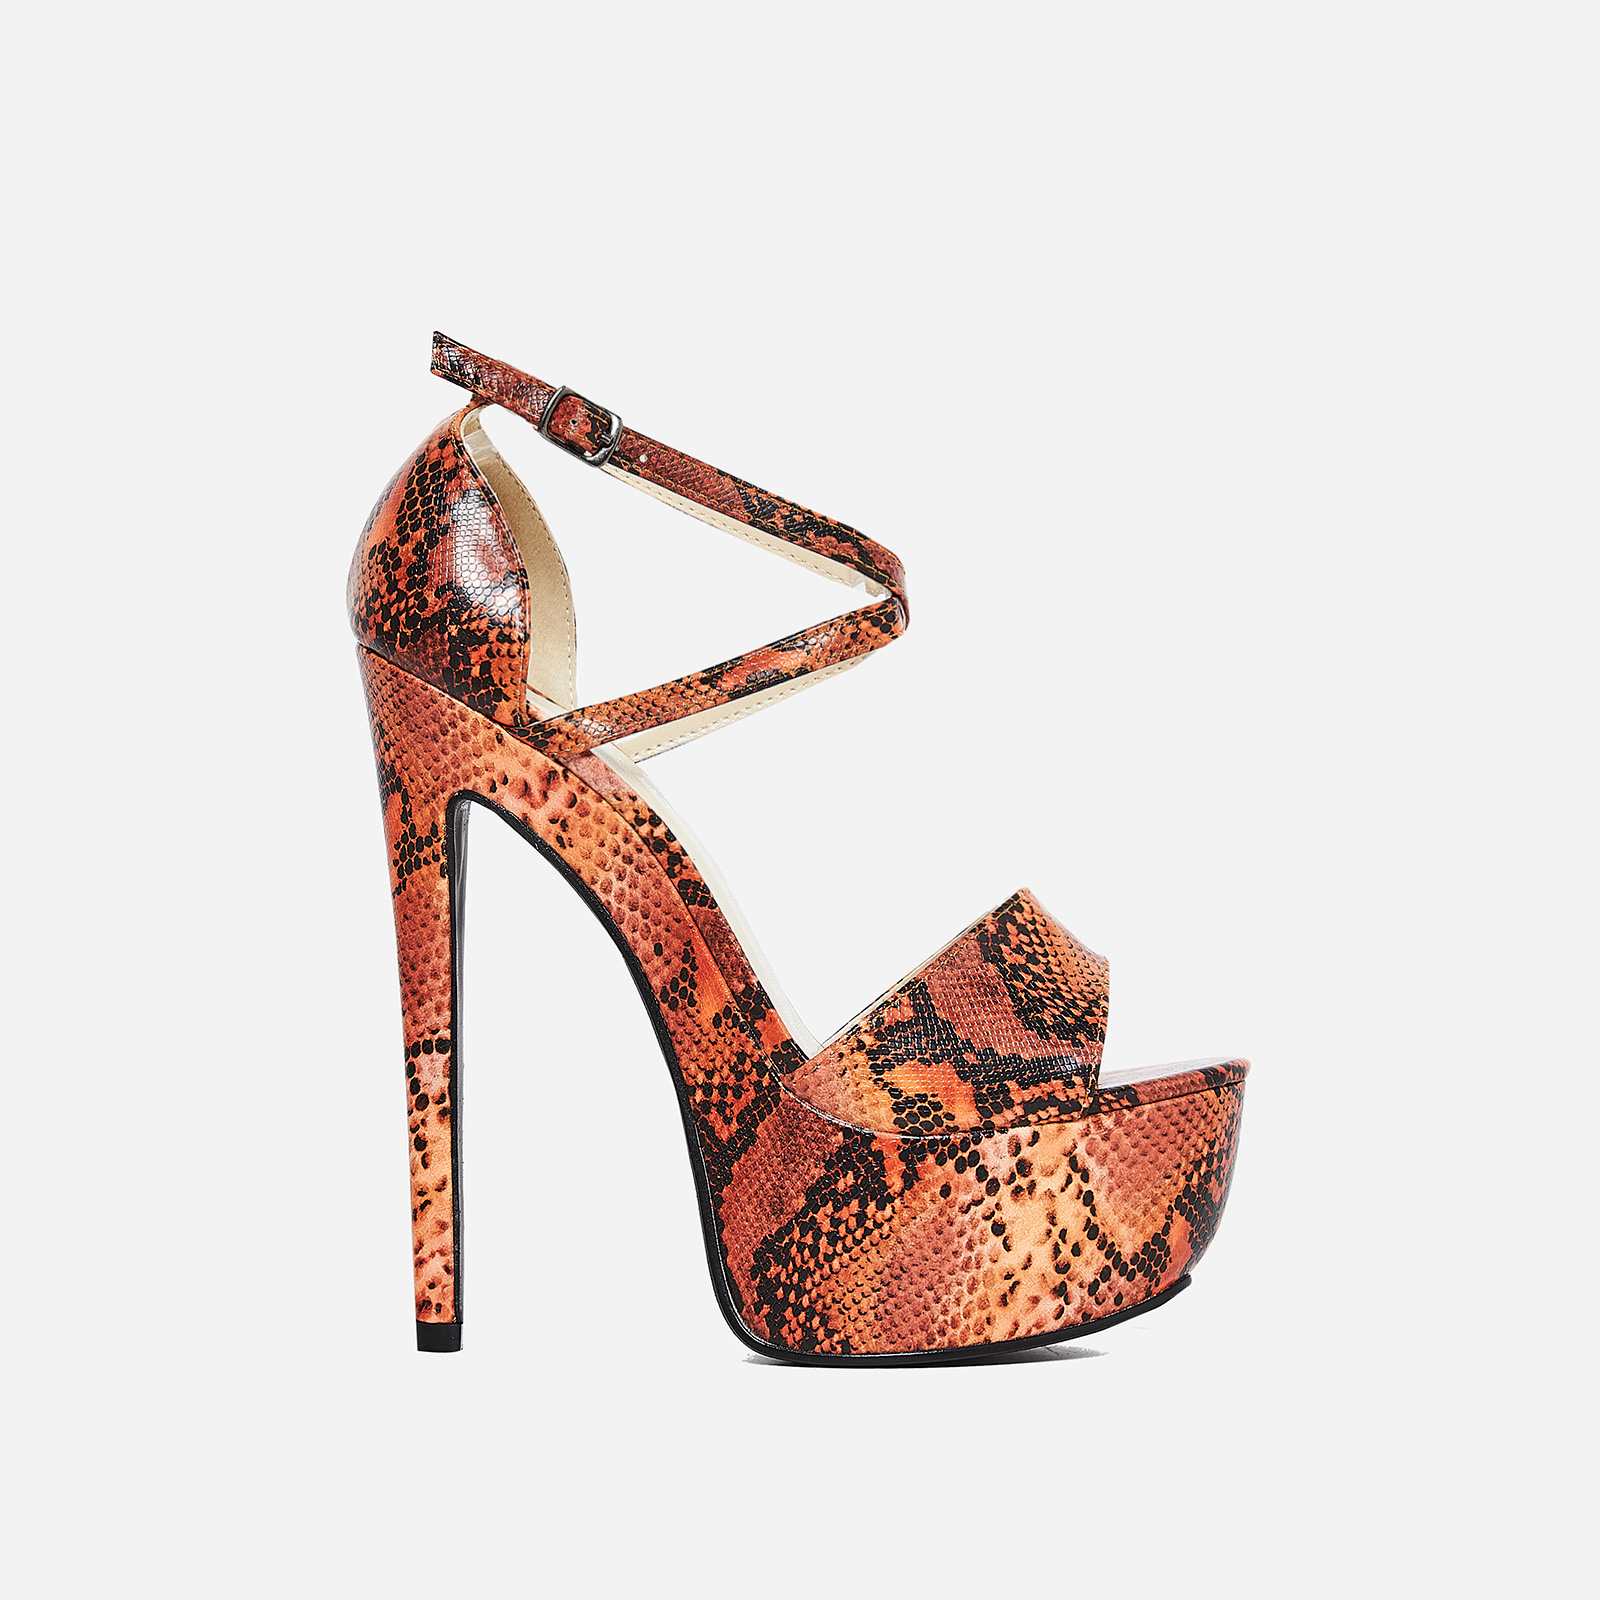 Boa Platform Heel In Orange Snake Print Faux Leather